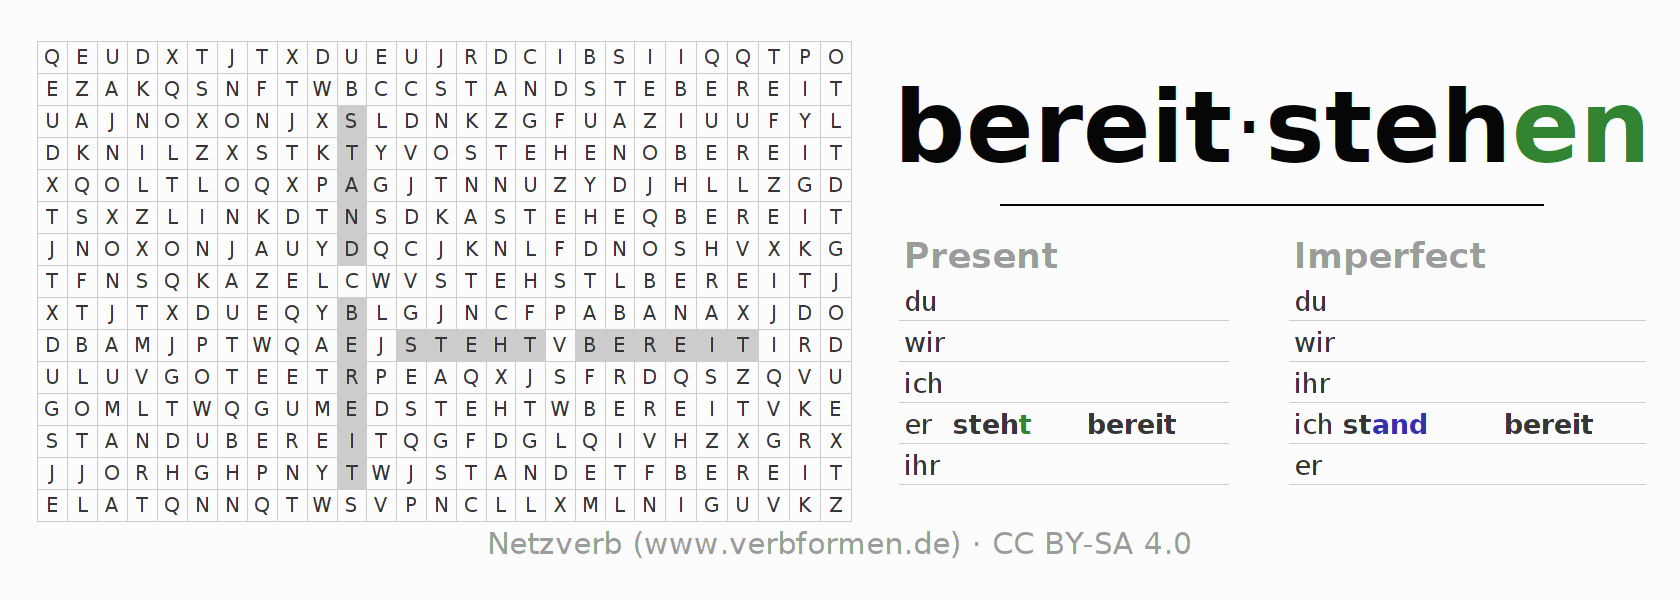 Word search puzzle for the conjugation of the verb bereitstehen (hat)